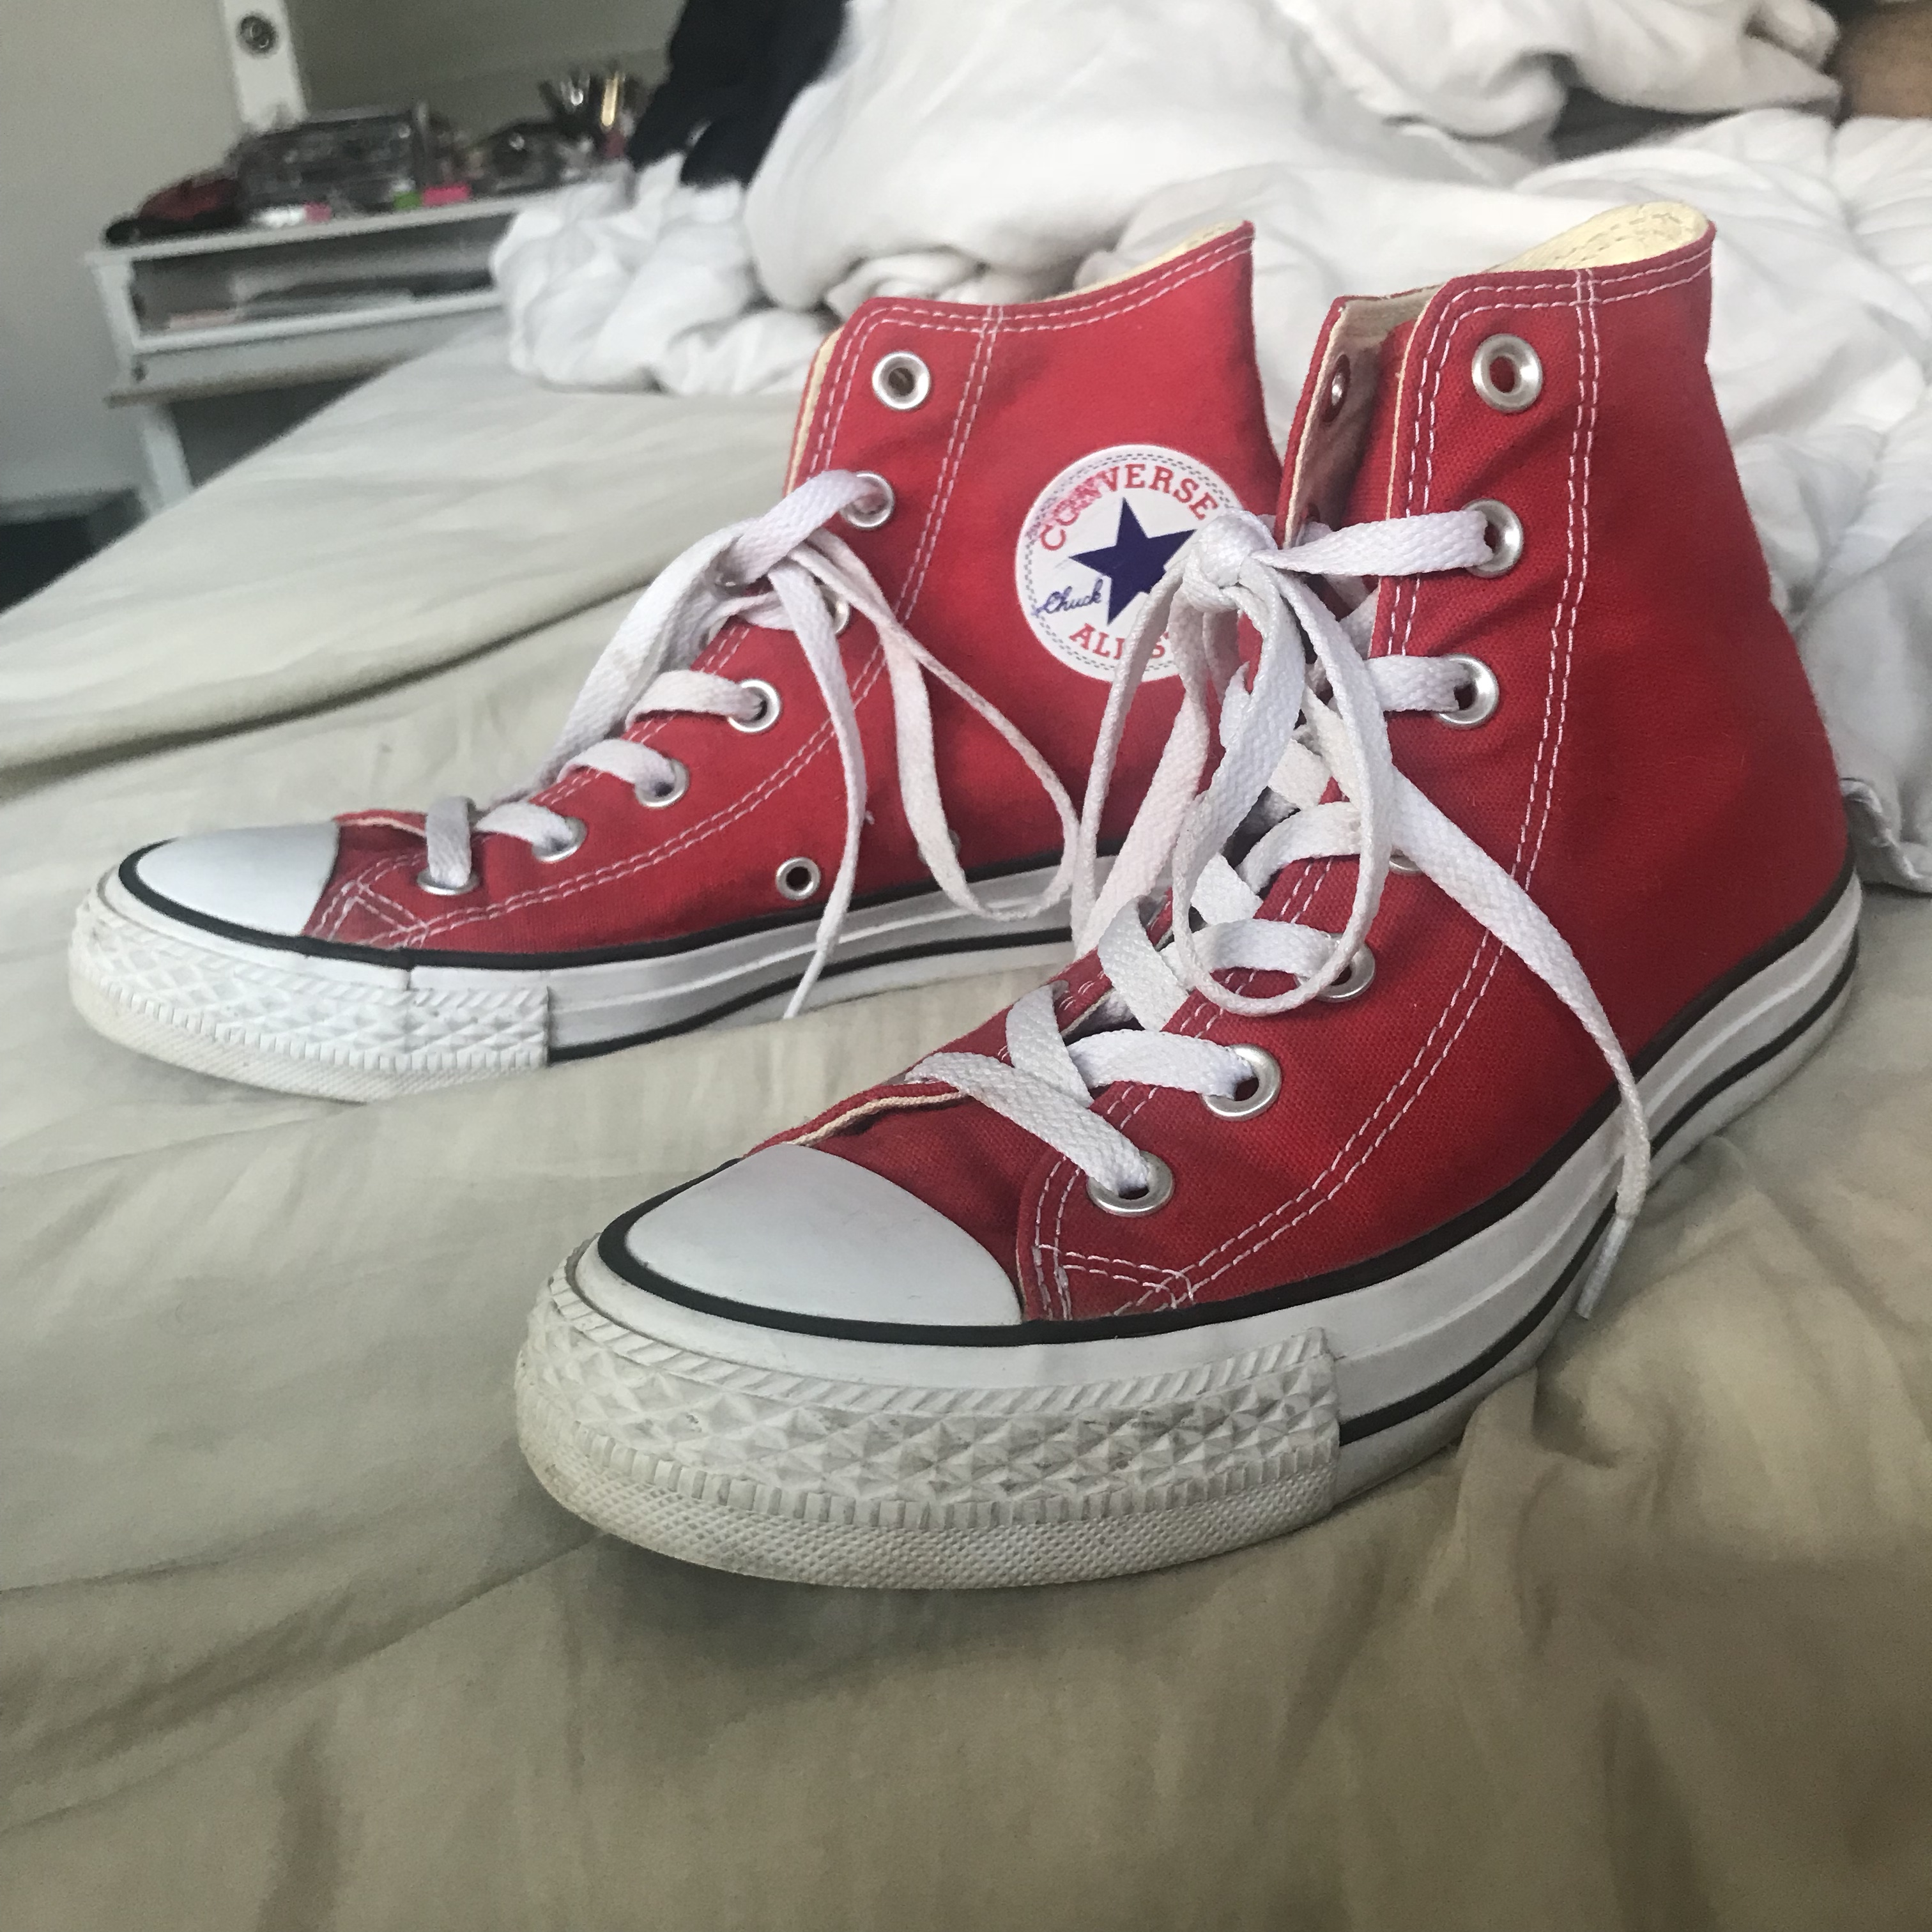 Classic red high top converse in 810 condition. Depop